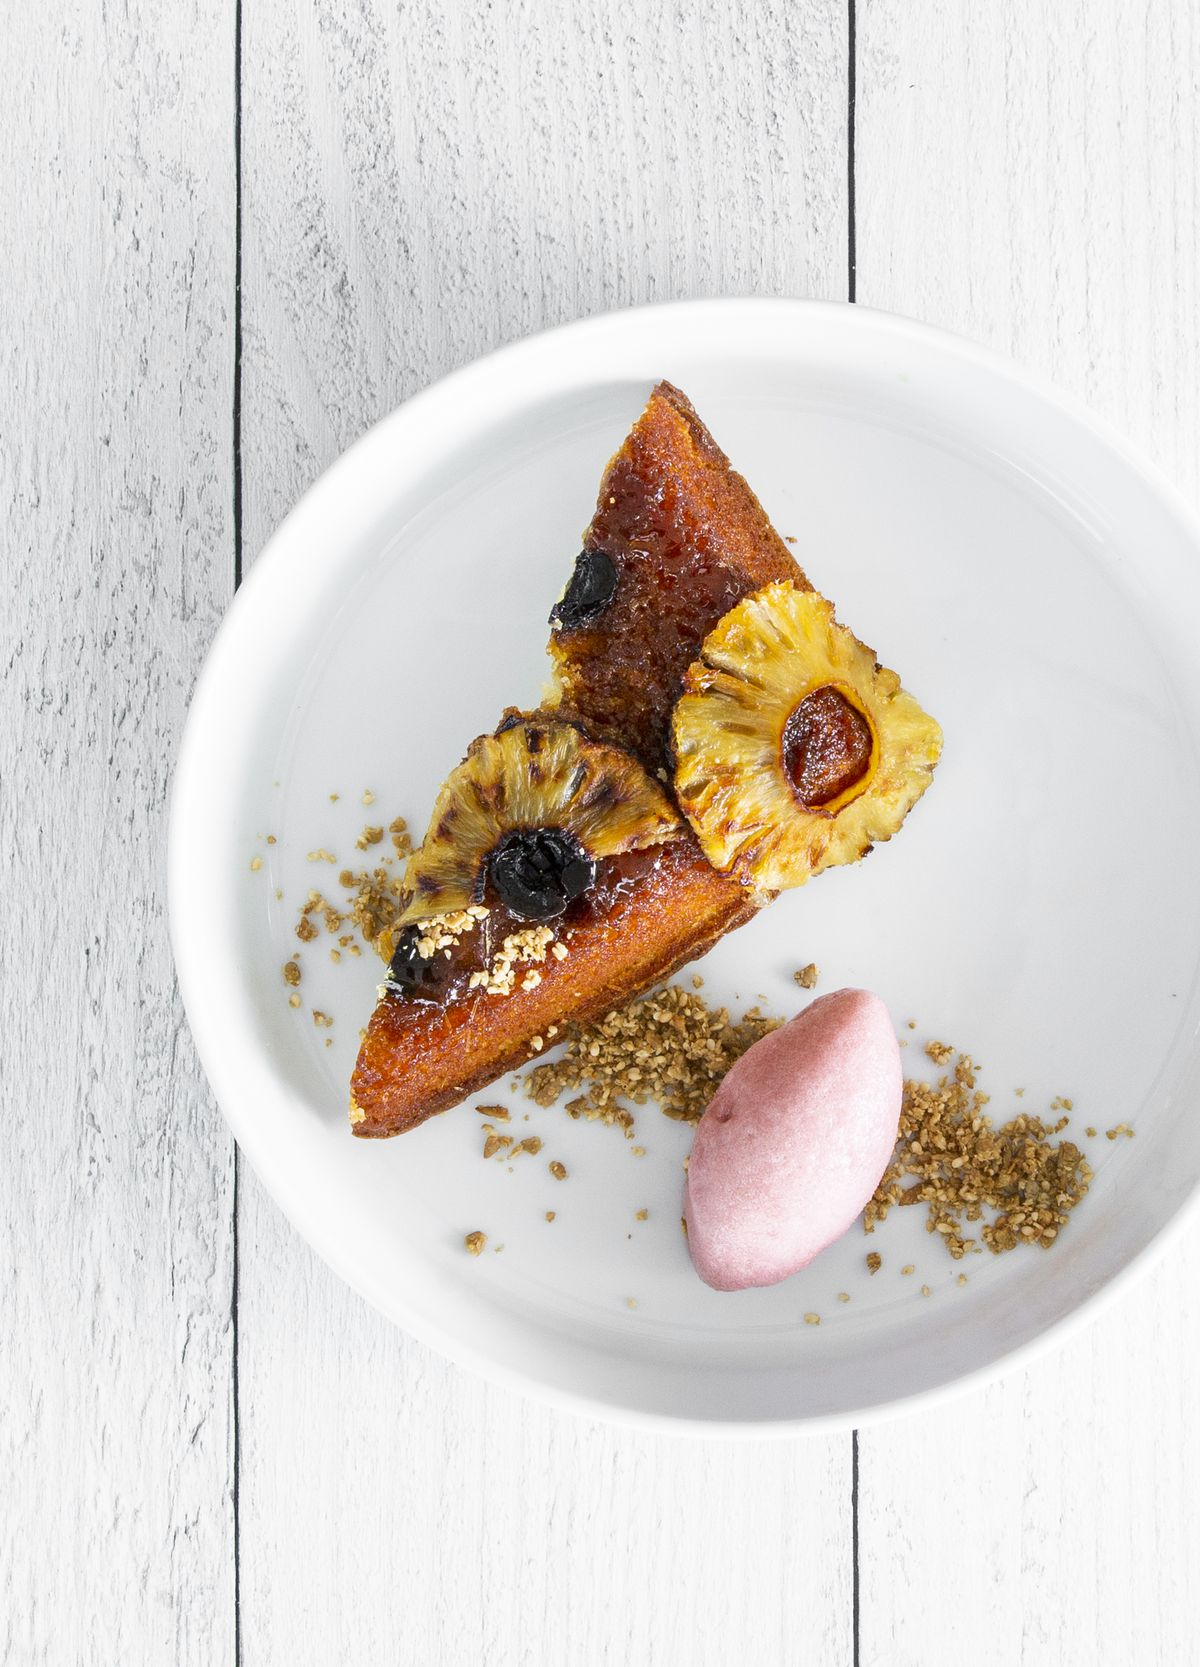 Pineapple upside-down cake with cherry sorbet